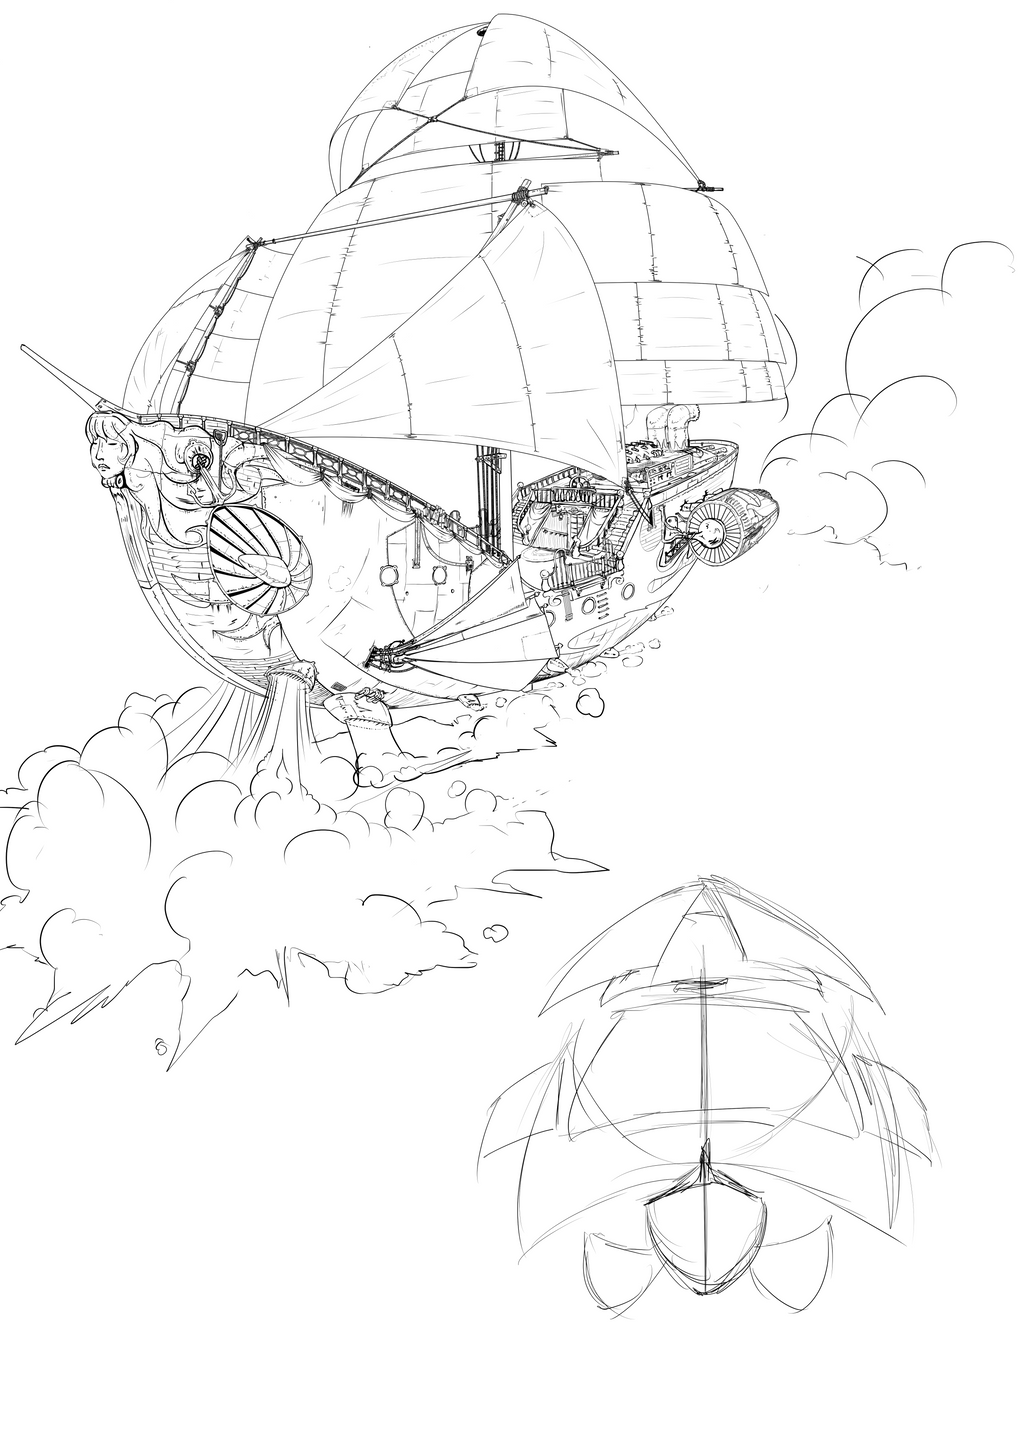 SteamPunkBoat_v0.5_By_Tomatecannibal by tomatecannibal